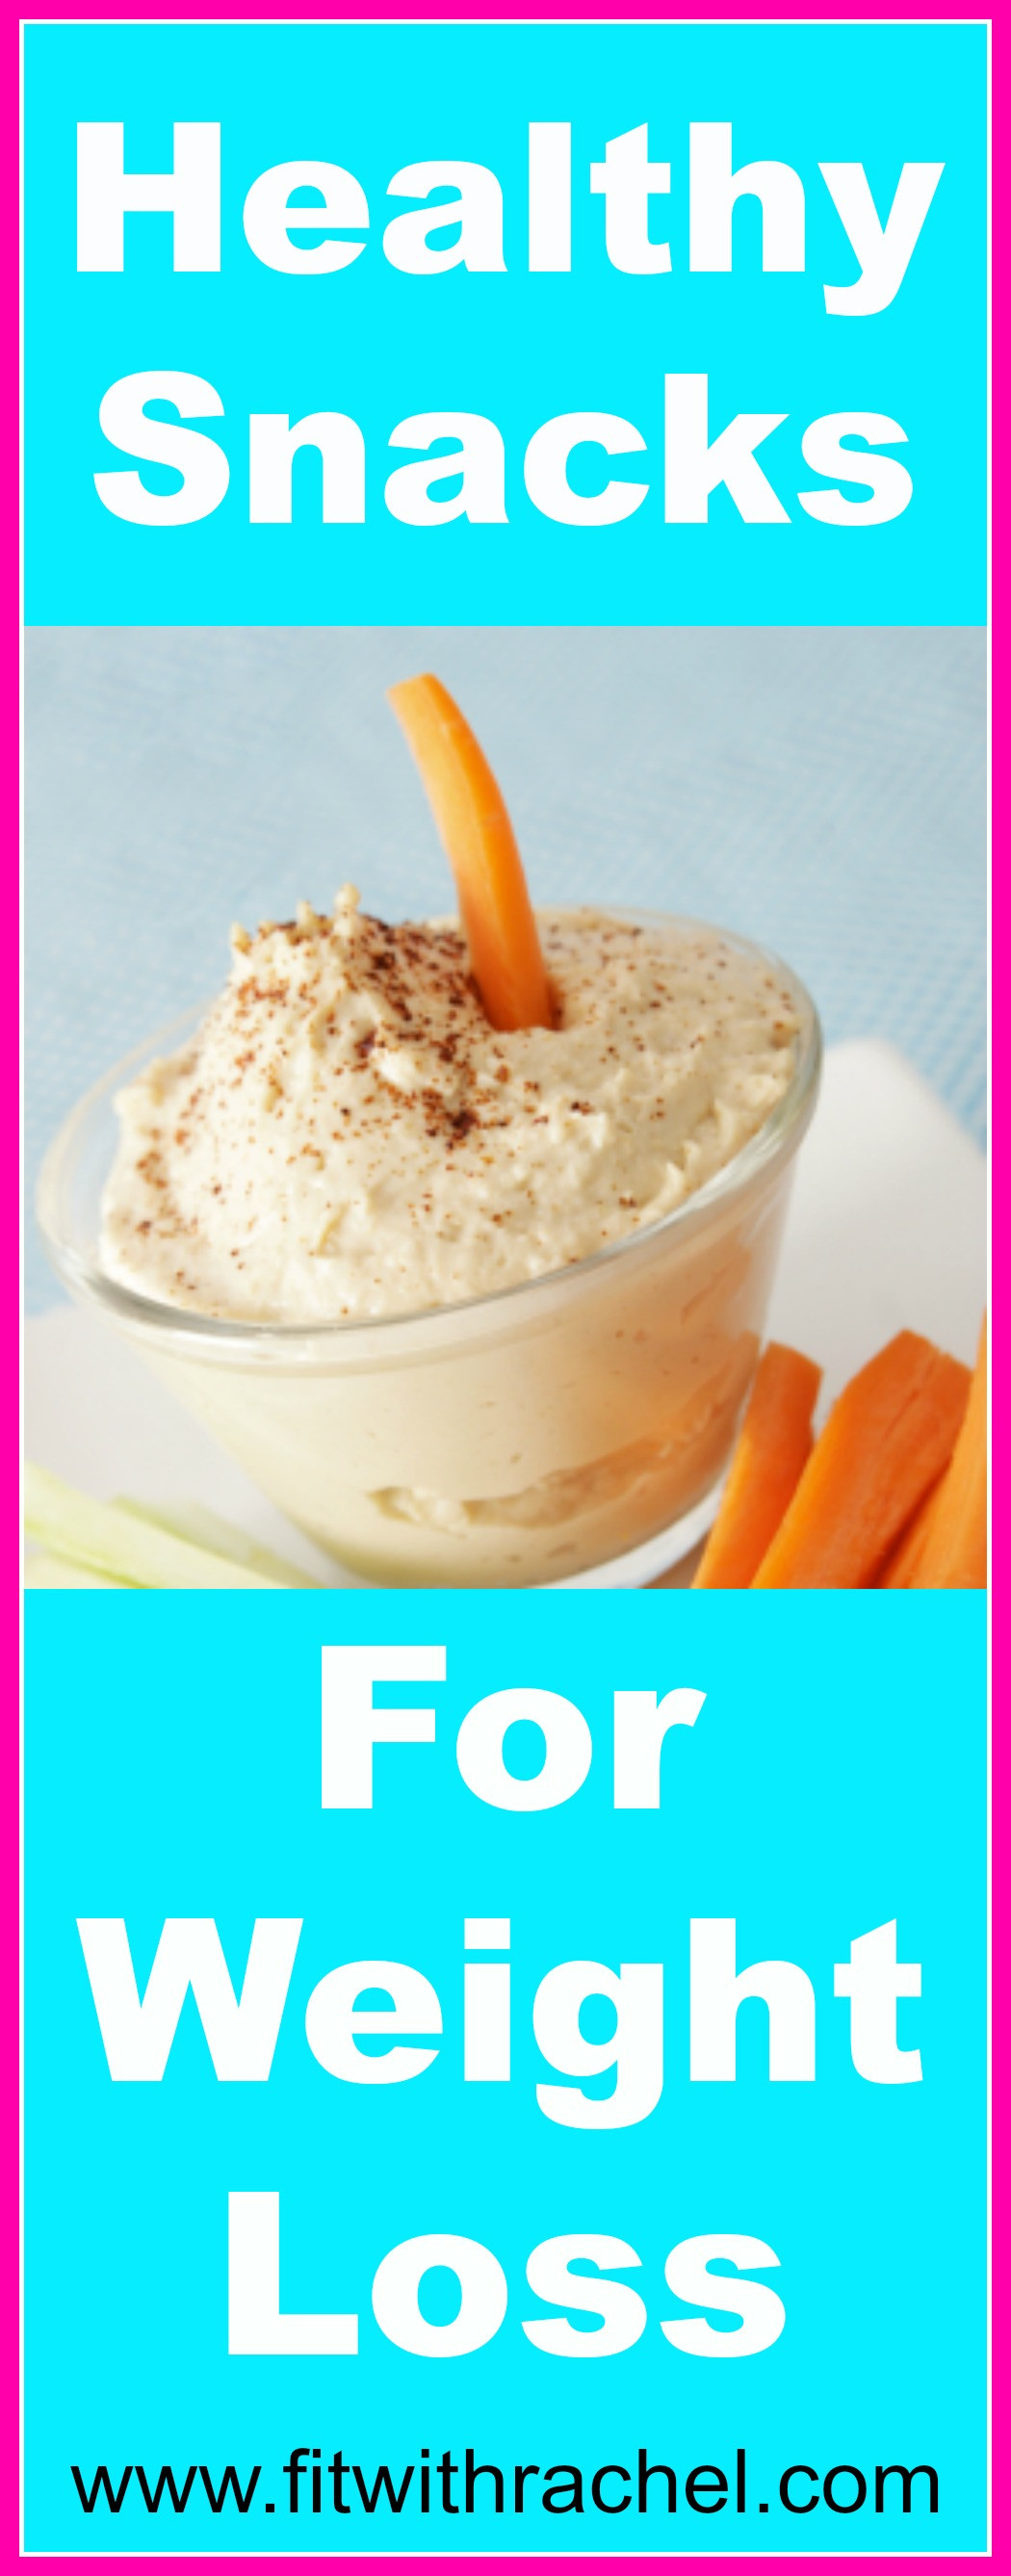 Healthy Snacks For Men'S Weight Loss  Healthy Snacks for Weight Loss